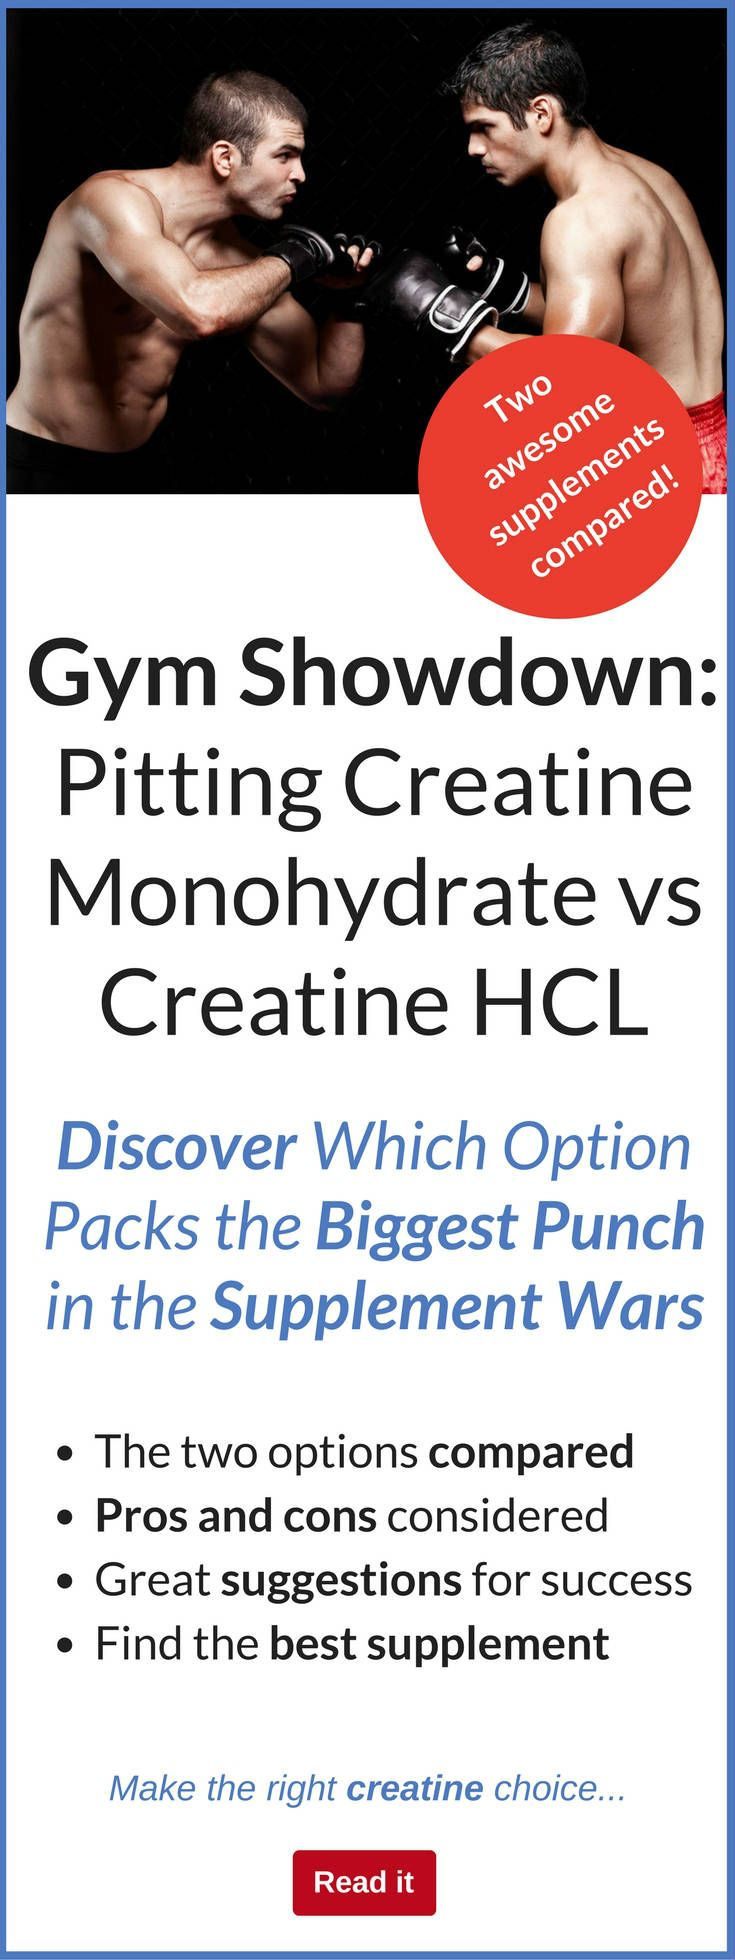 In one corner there is creatine monohydrate. It's the most popular form of creatine in the supplement market. In the other corner we have creatine HCL. Some think it's the best creatine on the market while others think it's rubbish. Let's look at the facts about these two dietary supplements and decide who wins.